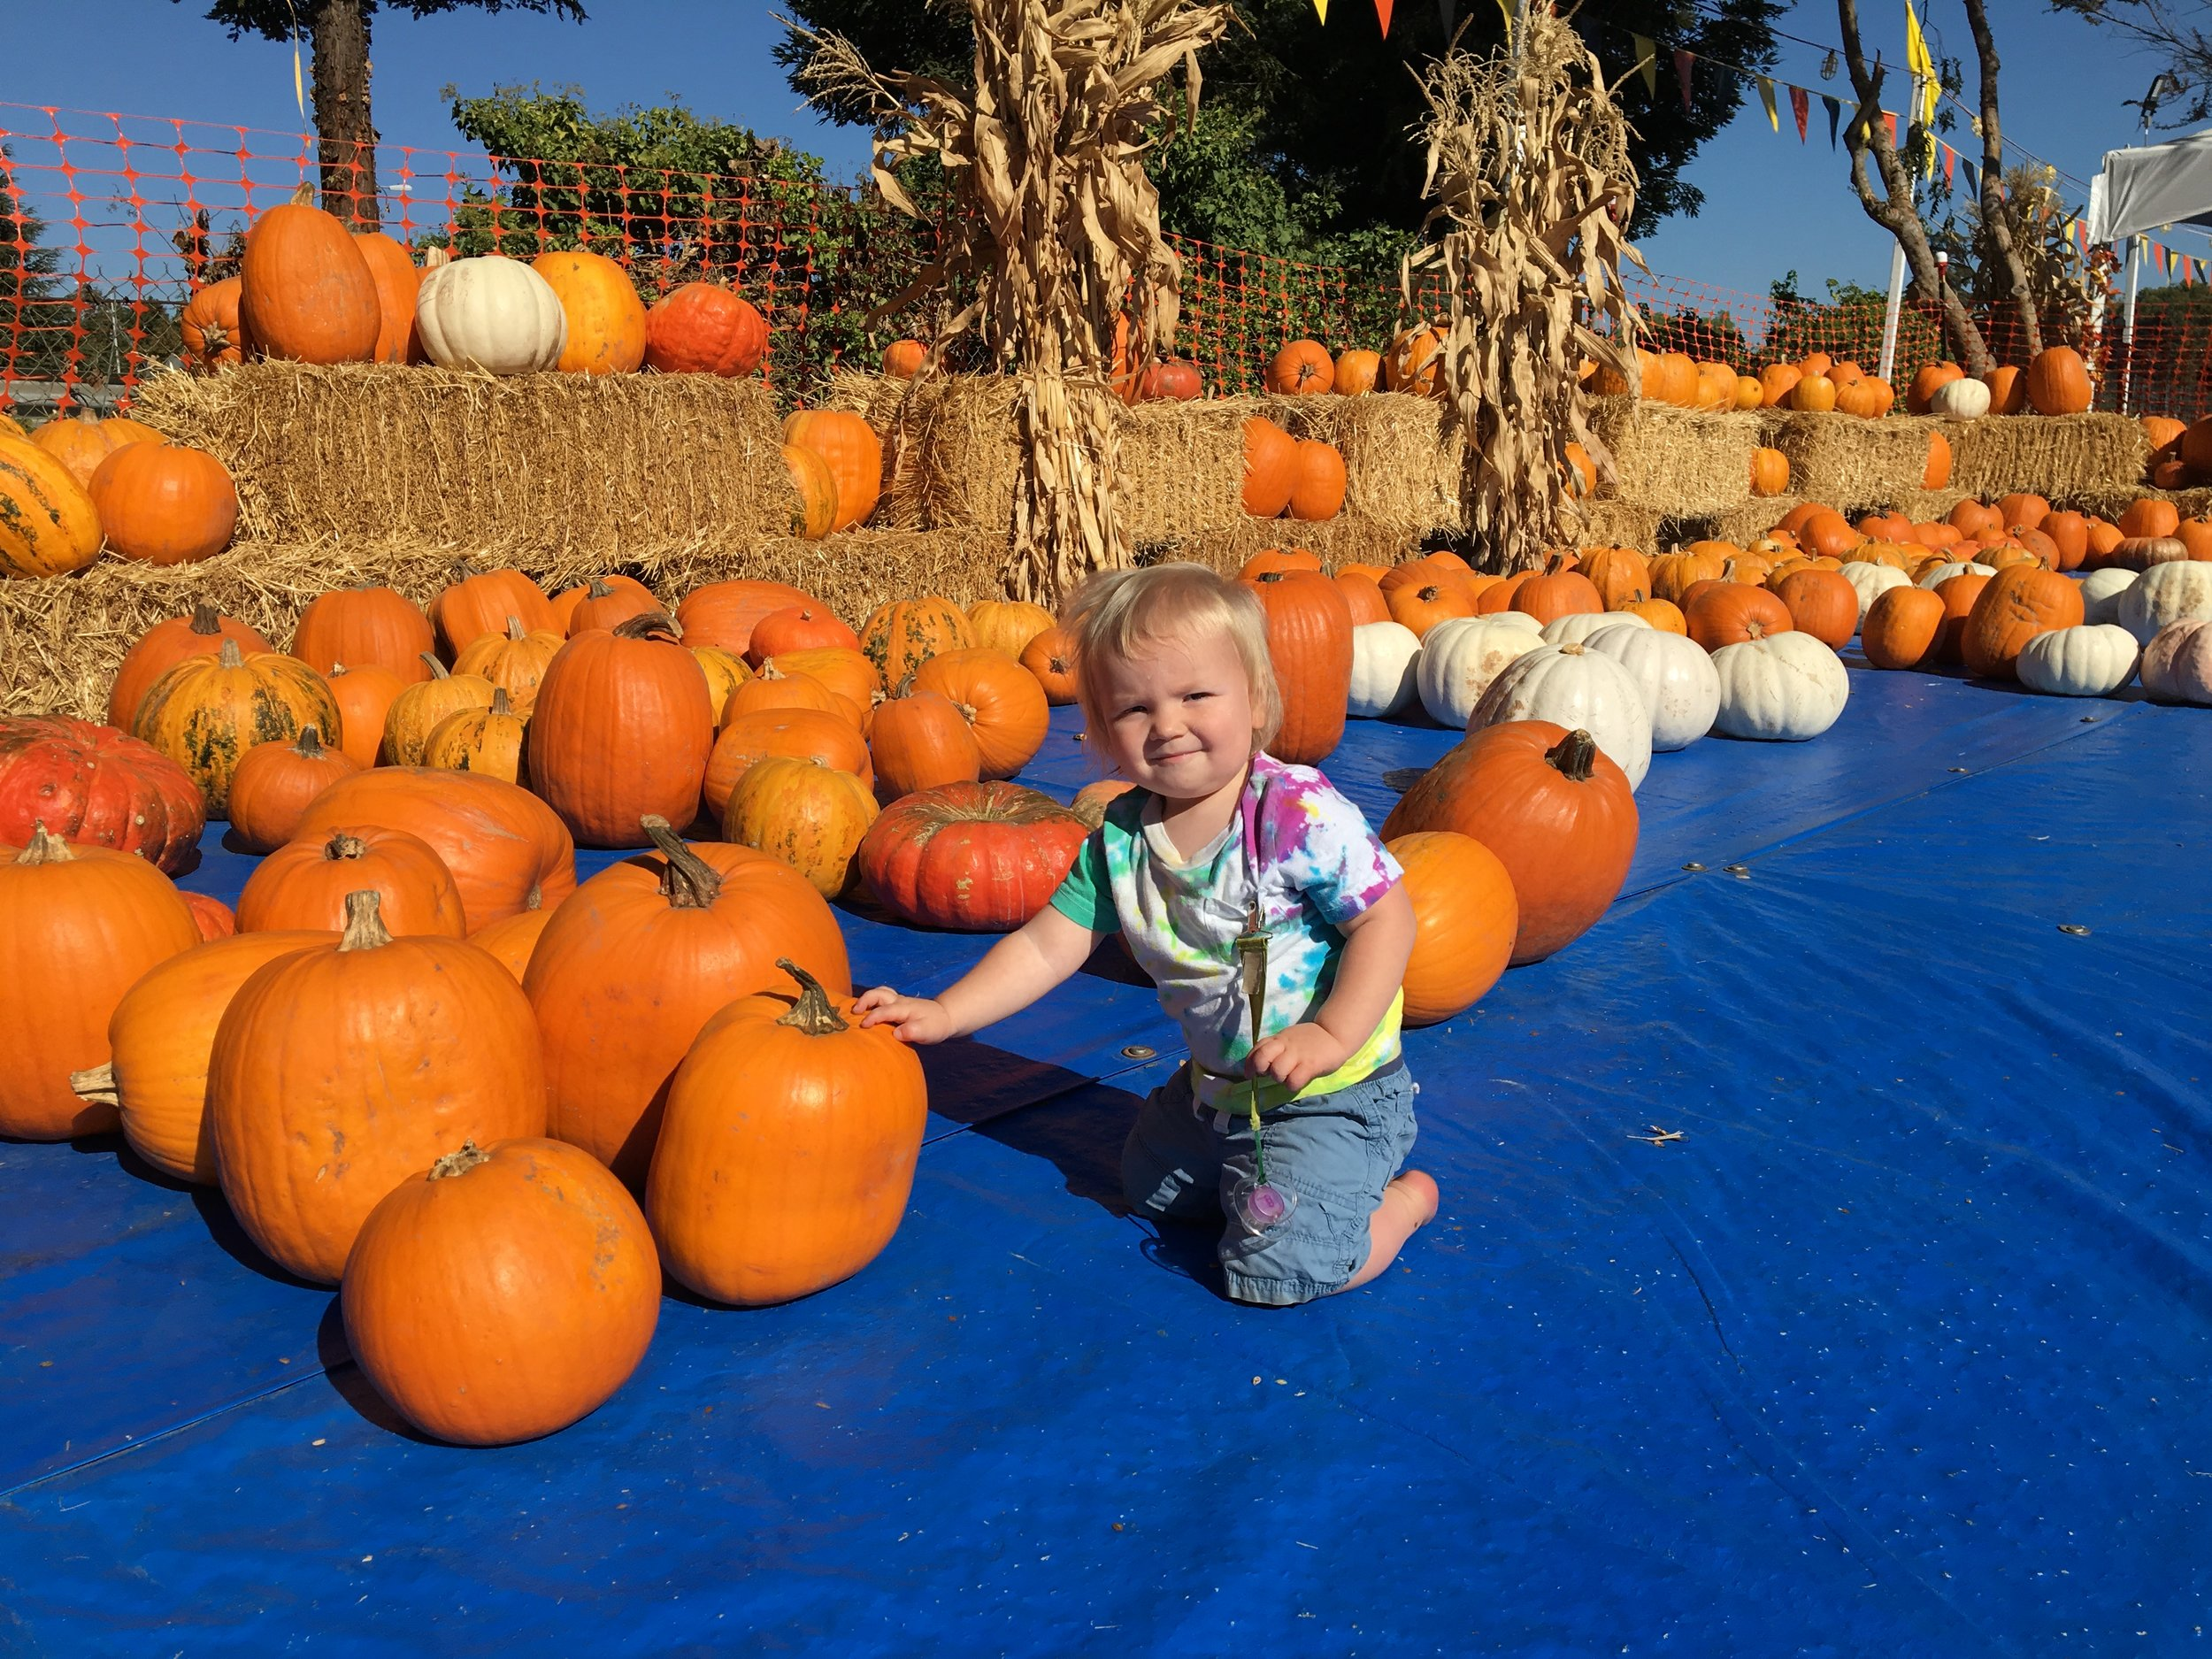 Posing in the pumpkin patch